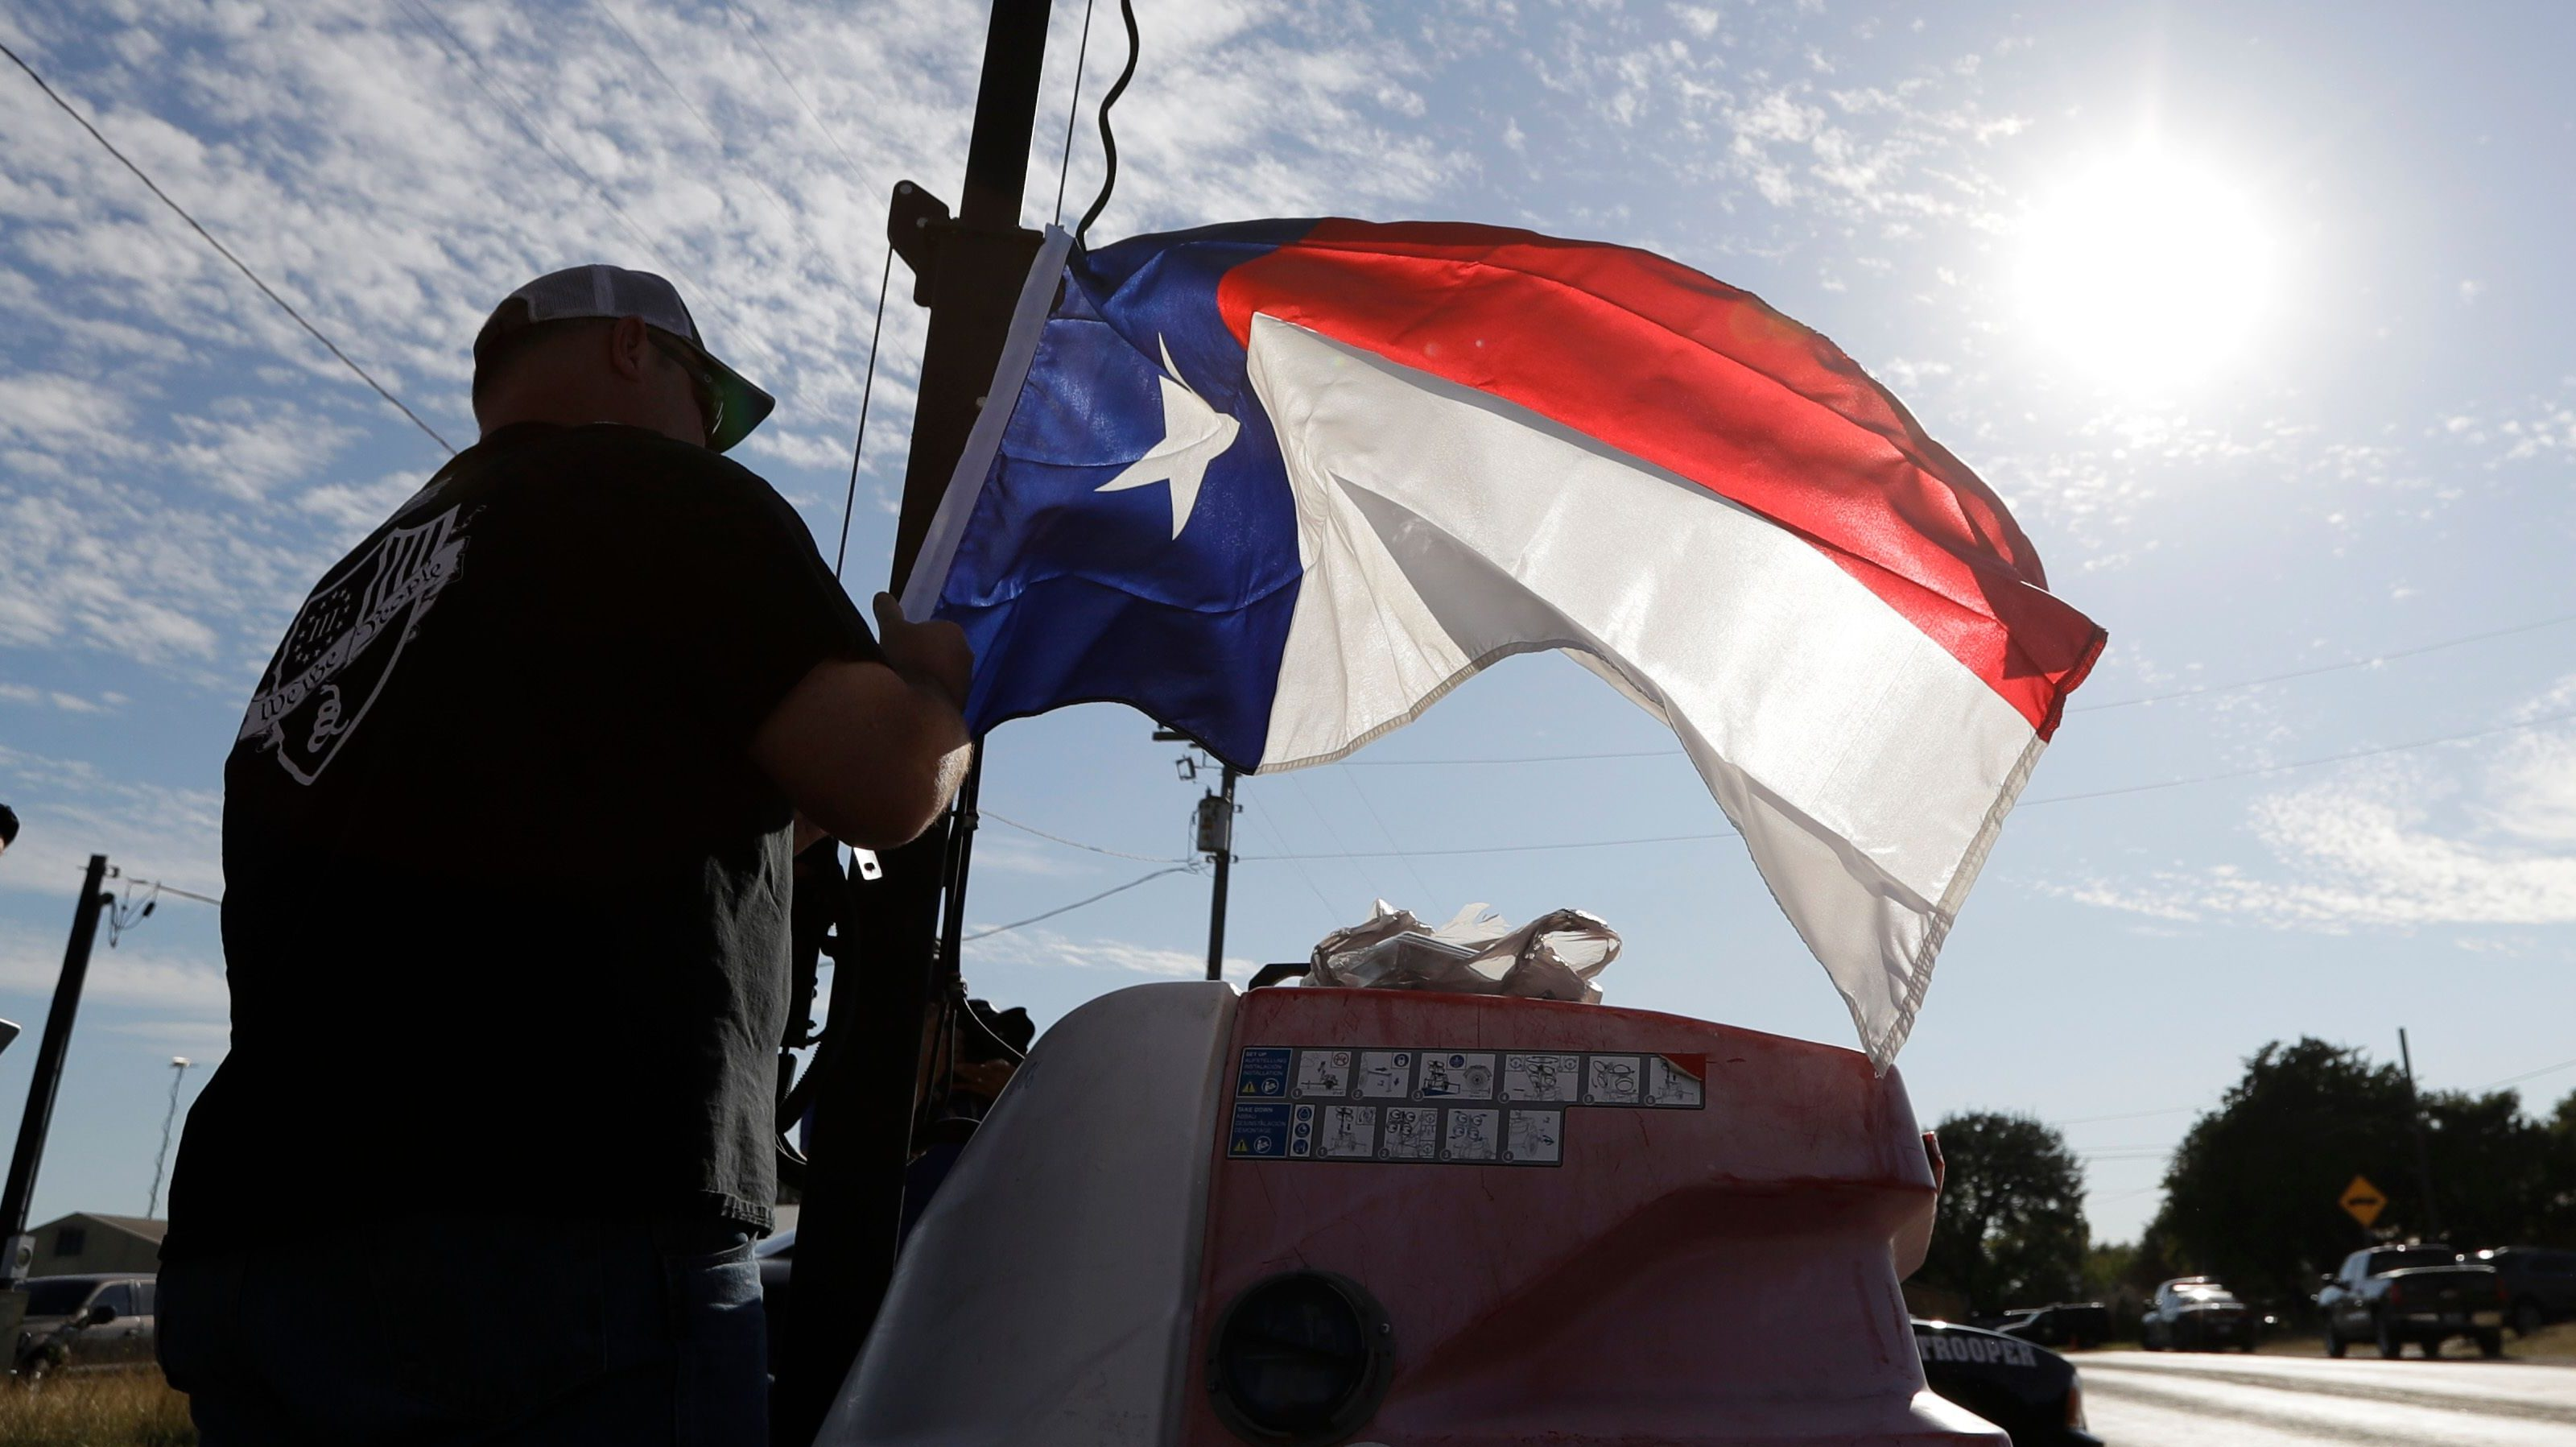 Jim Thompson places a Texas flag at a makeshift memorial near the scene of a shooting at the First Baptist Church of Sutherland Springs to honor victims on November 6, 2017, in Sutherland Springs, Texas.